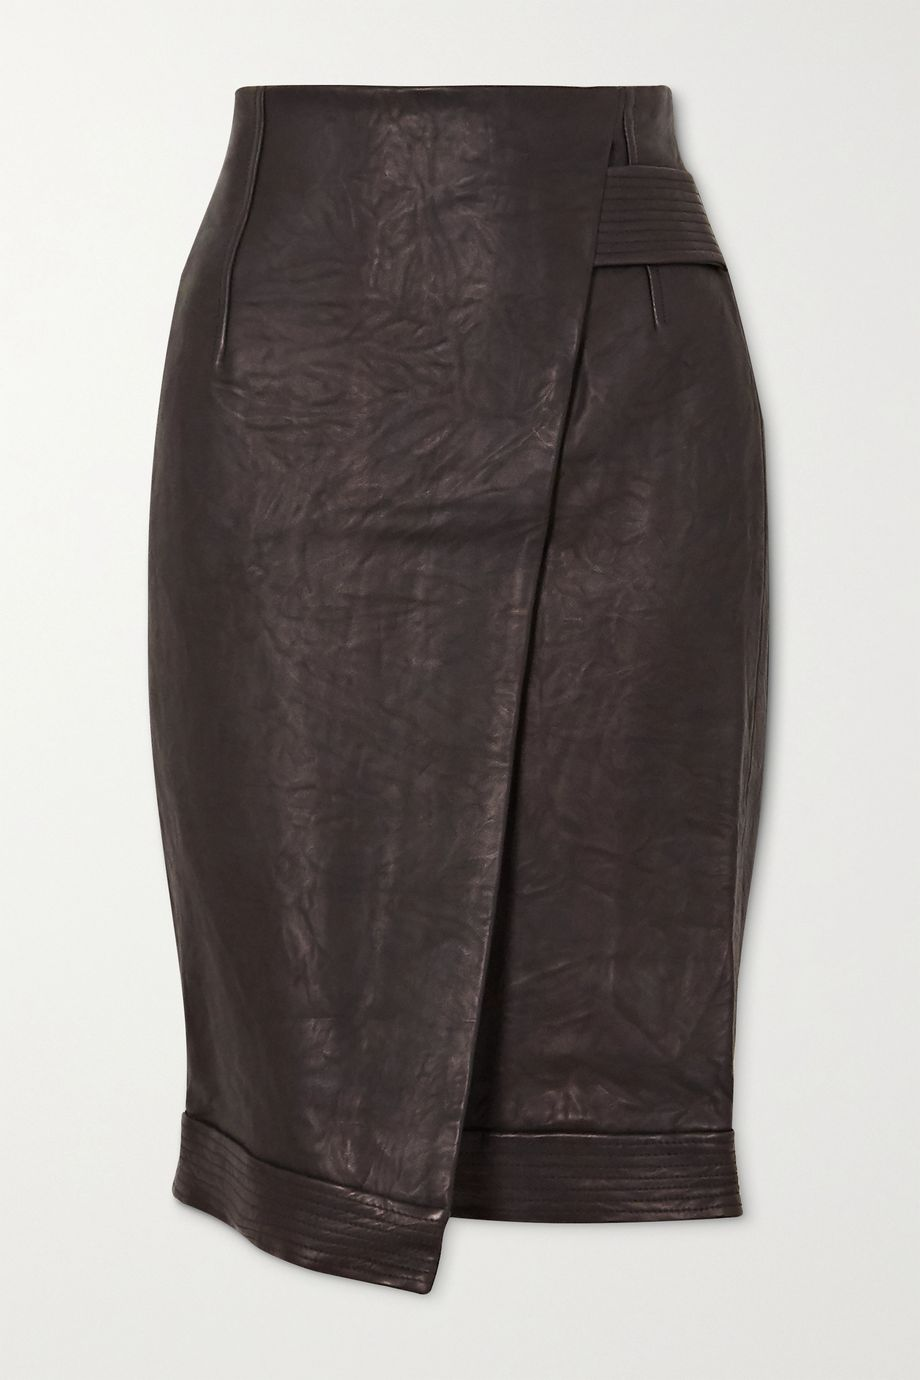 Veronica Beard Delilah asymmetric wrap-effect leather skirt